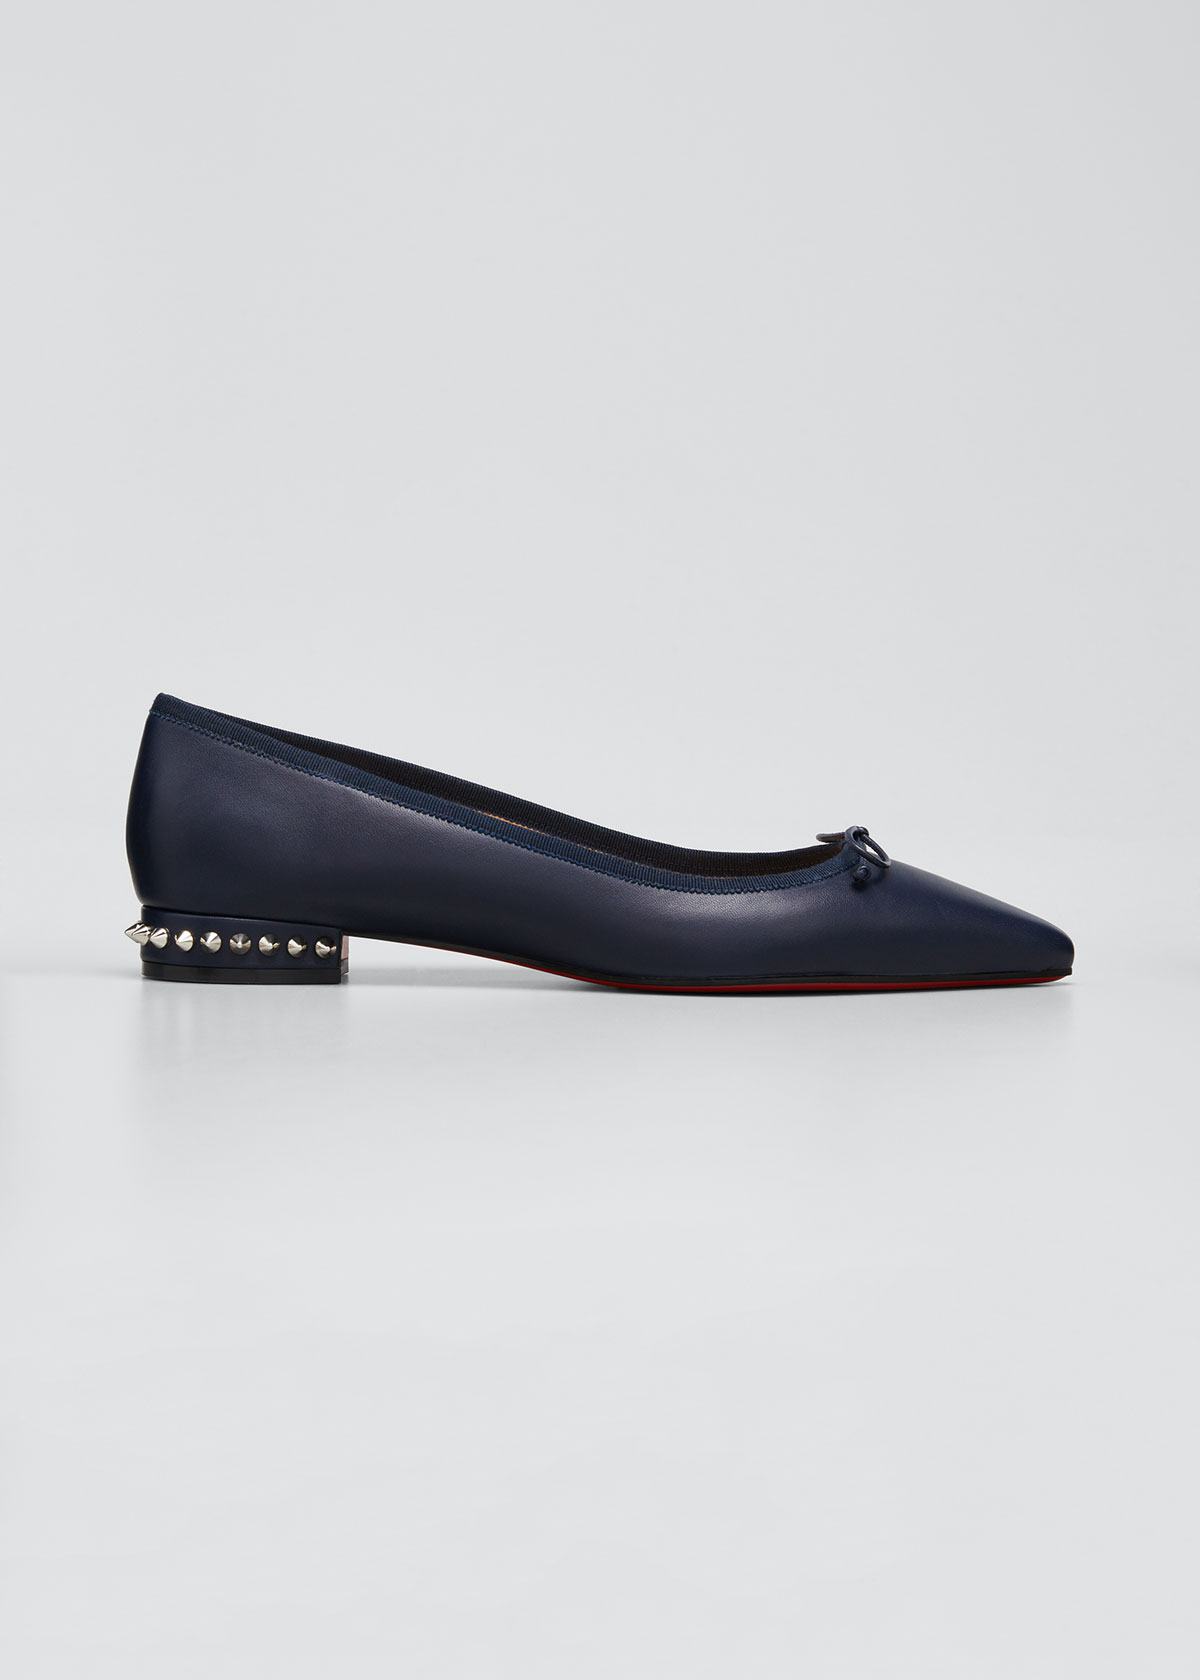 Hall Red Sole Ballet Flats by Christian Louboutin